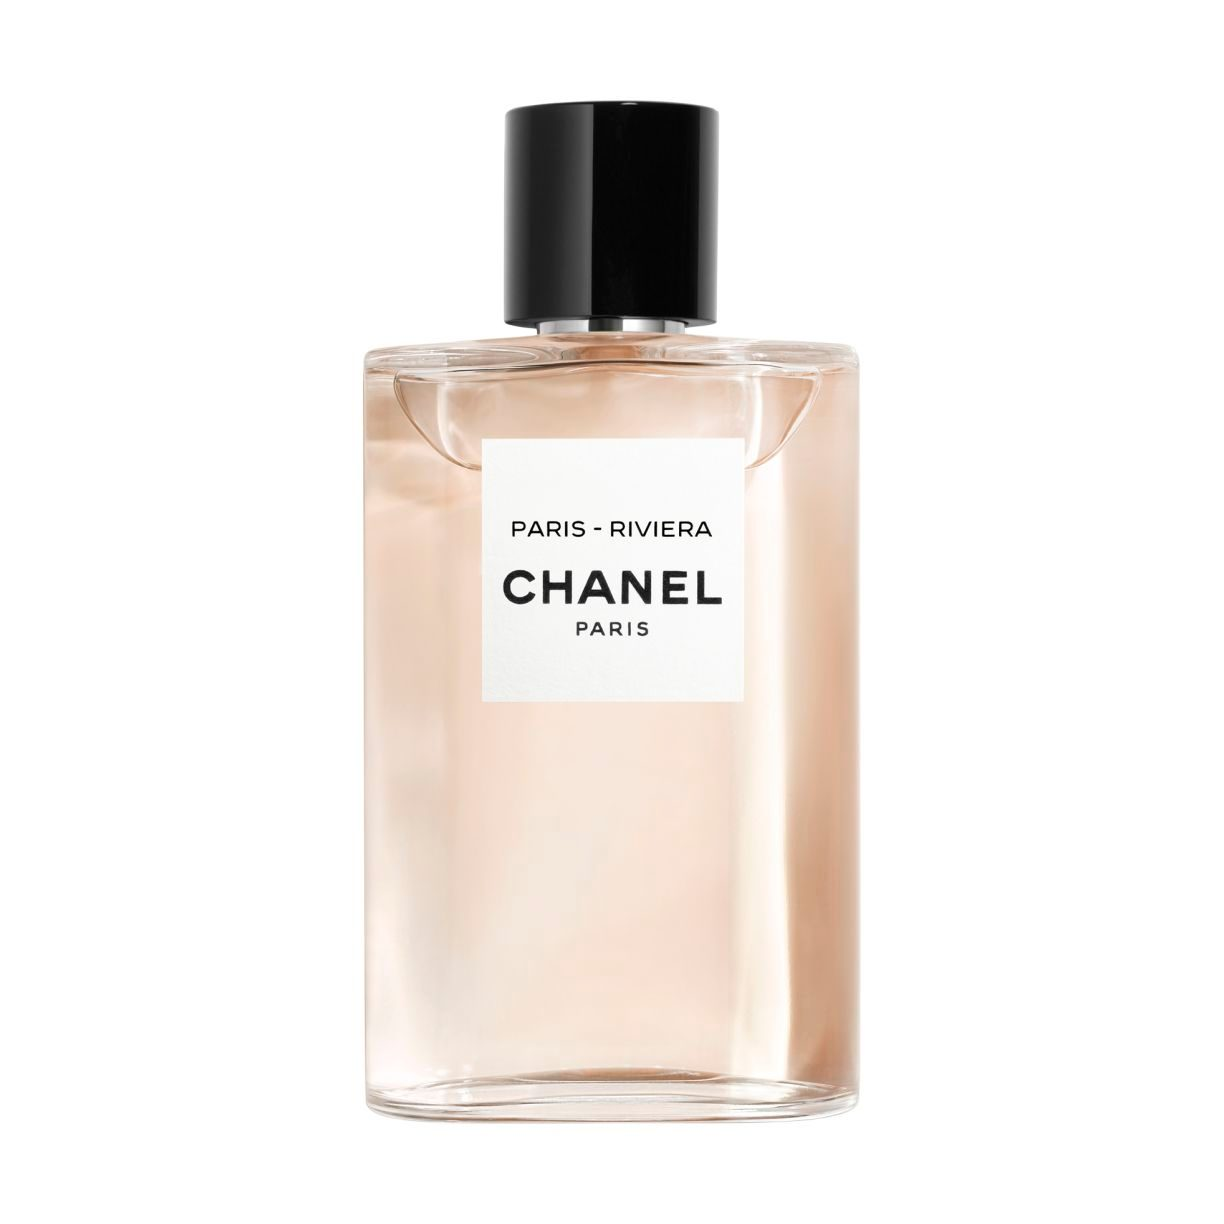 PARIS - RIVIERA LES EAUX DE CHANEL - EAU DE TOILETTE SPRAY 125ml